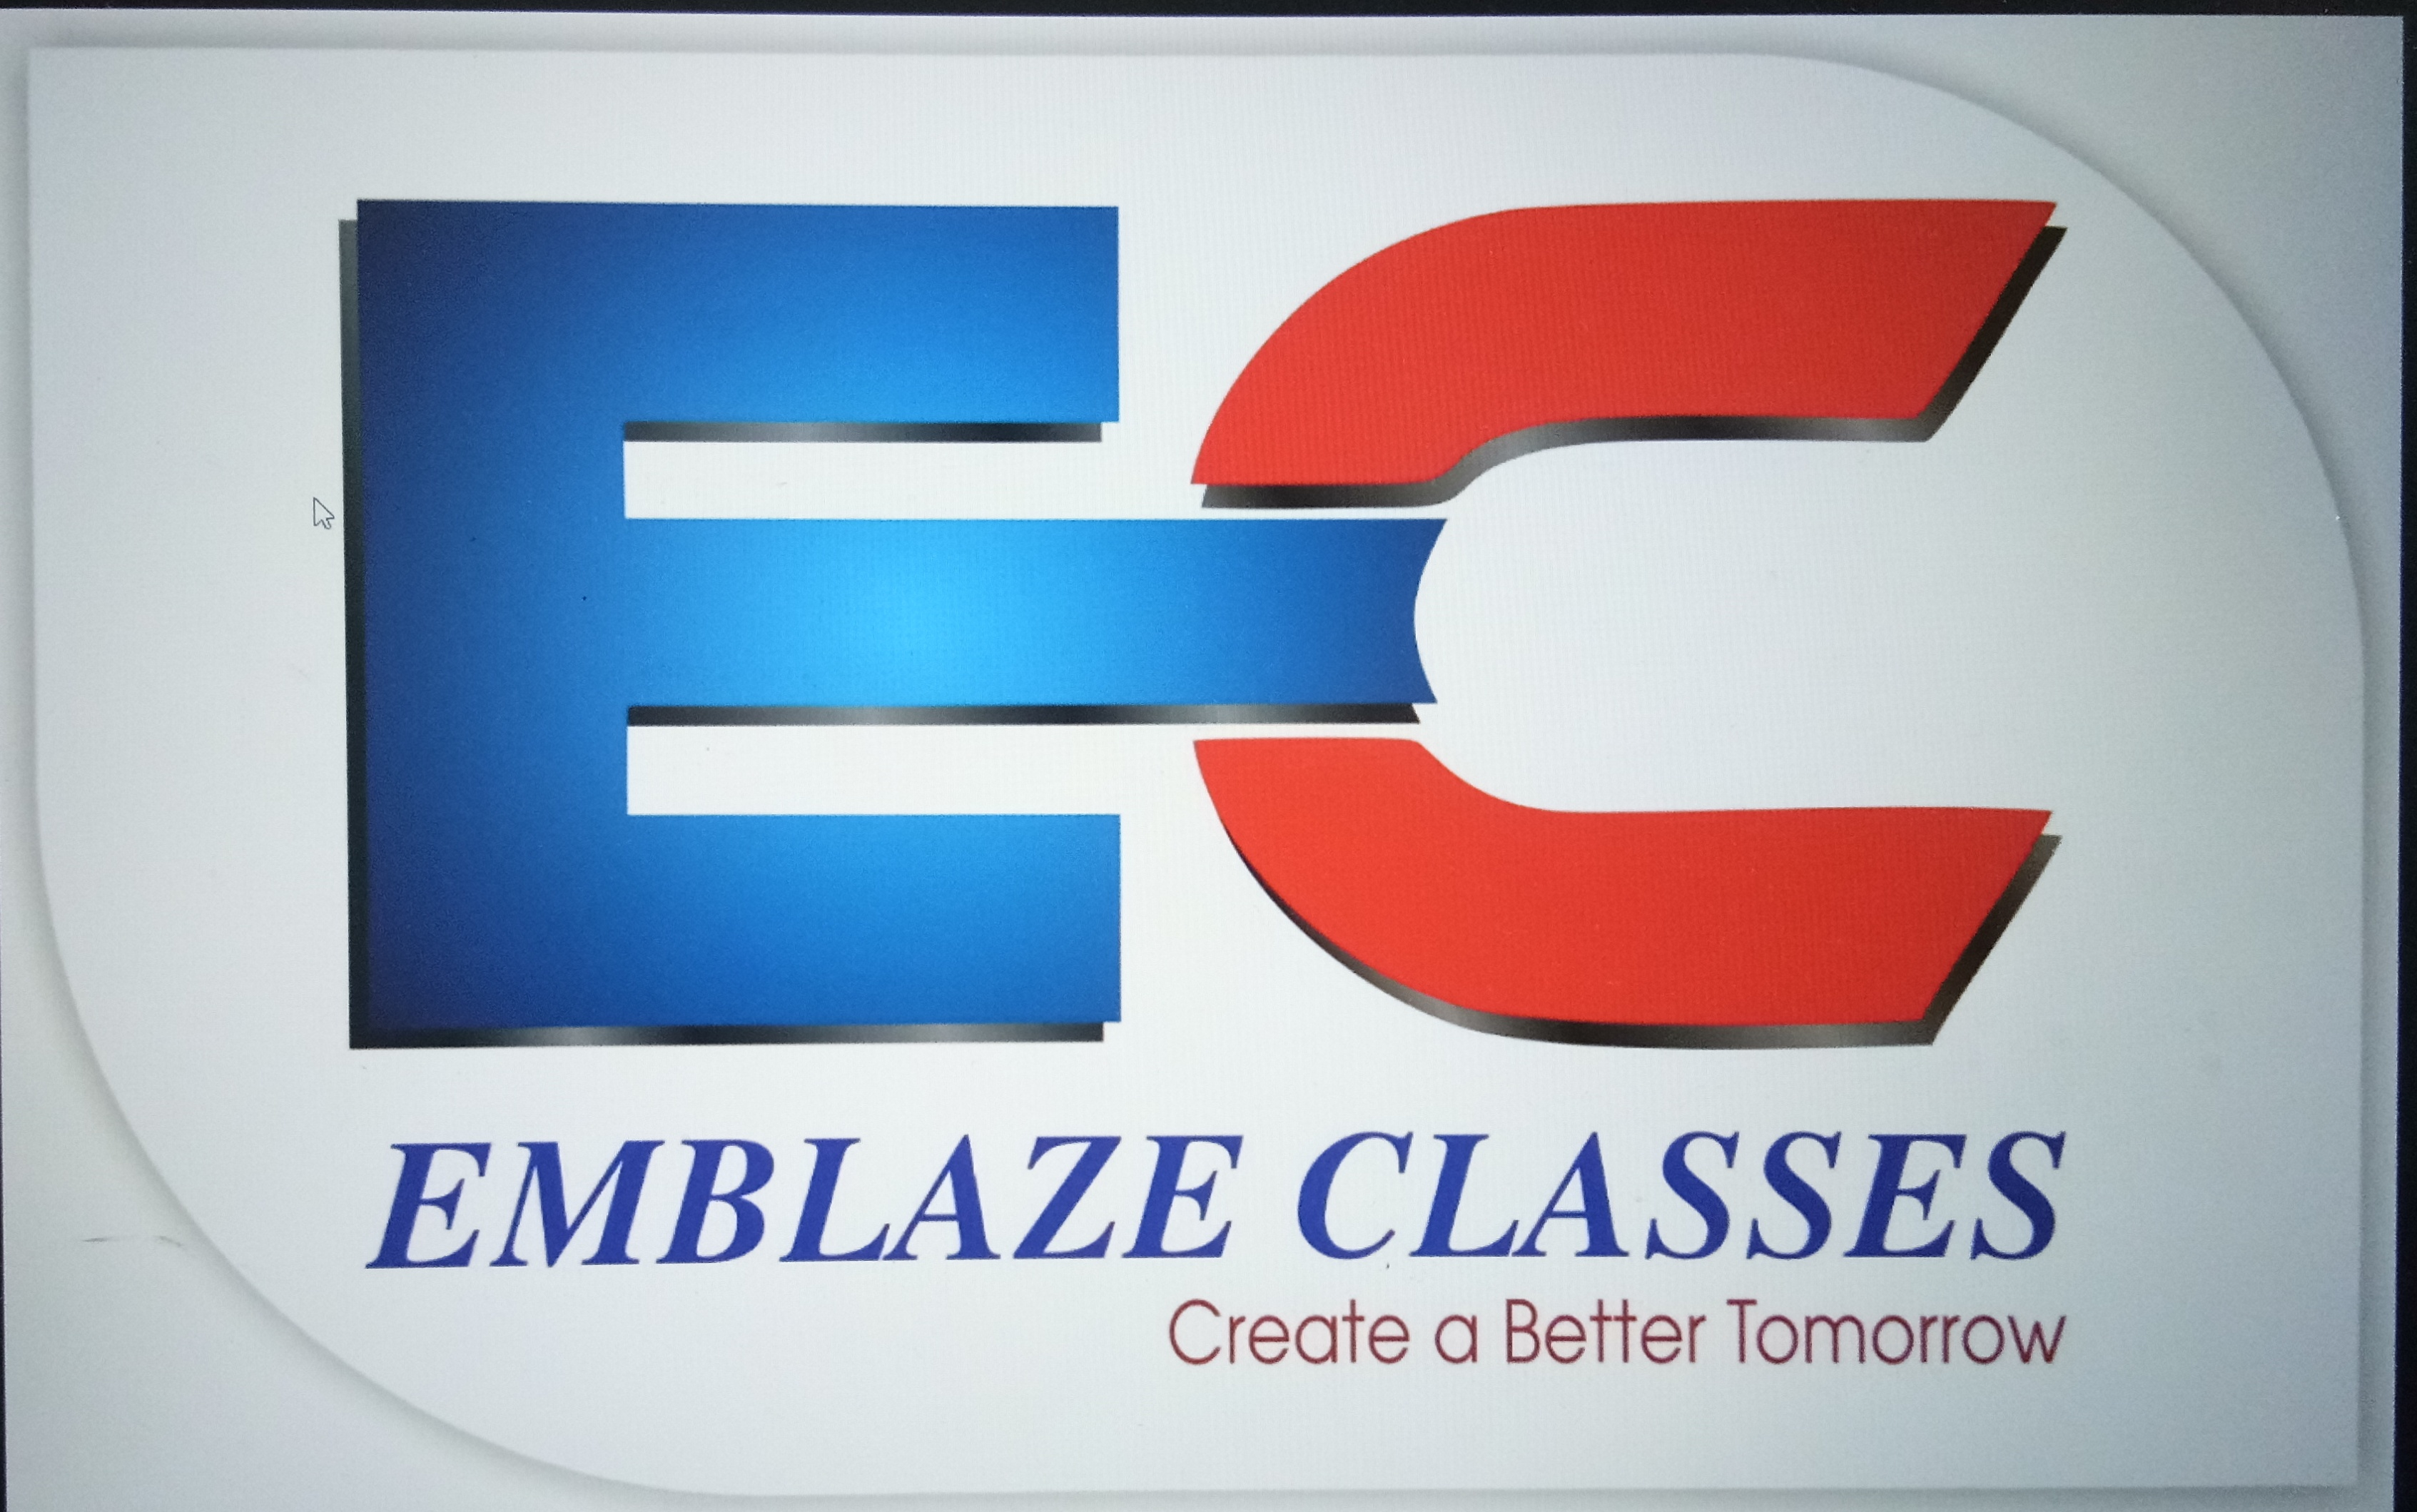 Emblaze Classes Logo